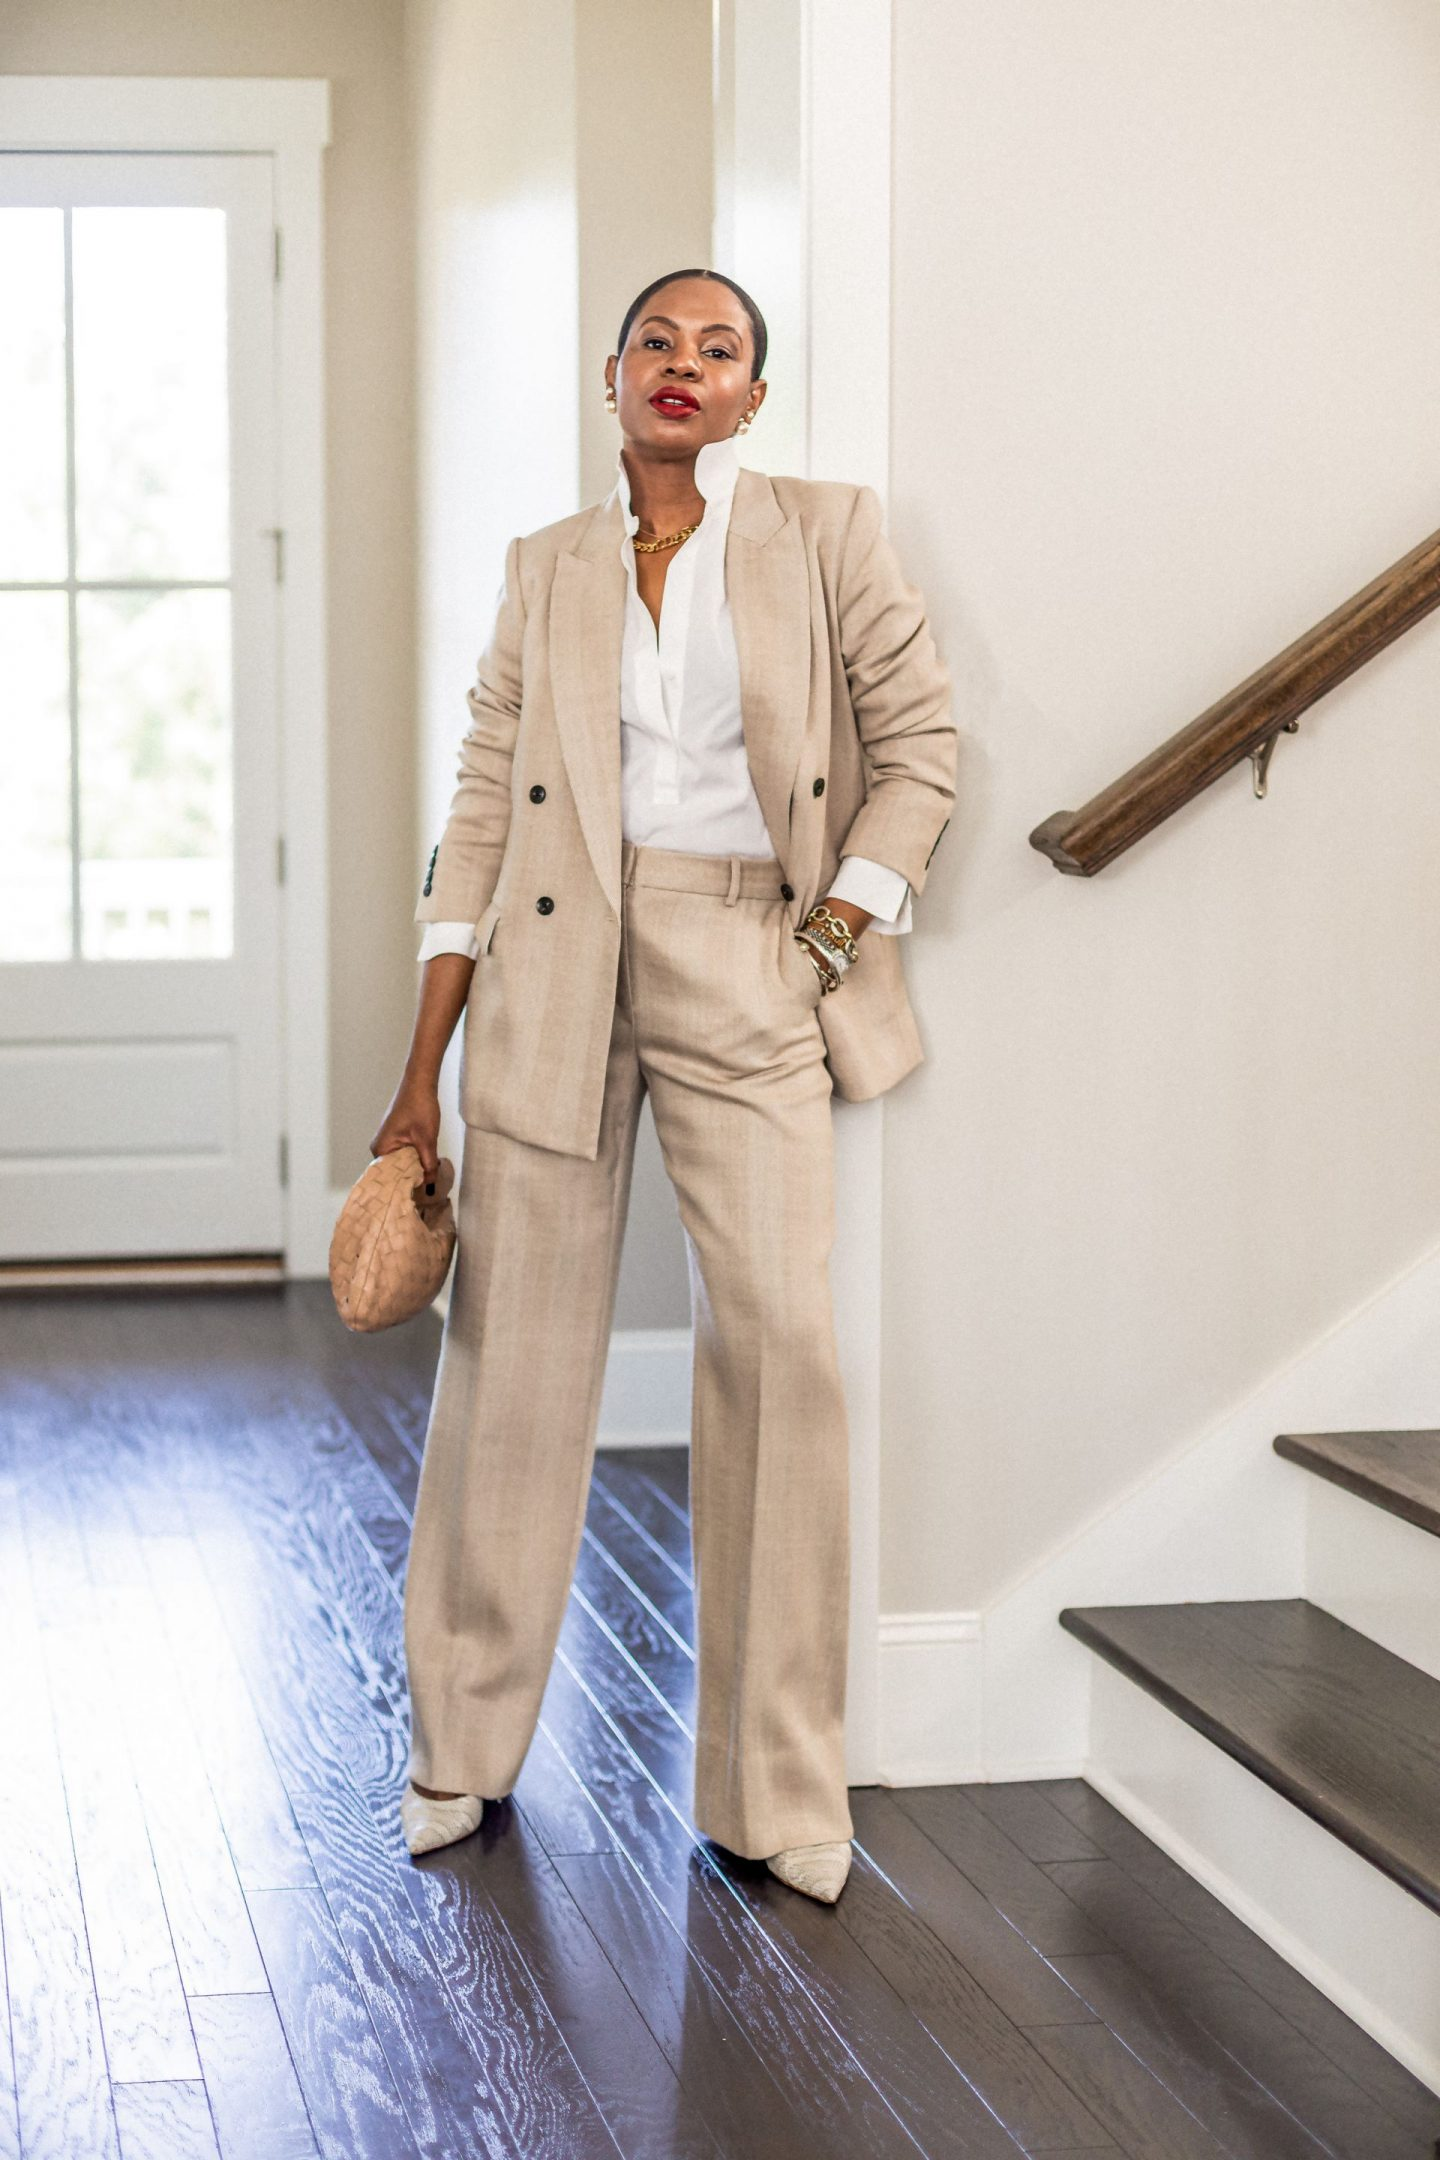 atlanta blogger wearing brown crop beige herringbone suit, beige boyfriend blazer, double breast jacket, crop trench coat, from m.m. lafleur, how to style a suit, what to wear to work, work looks, work outfits, work outfit inspiration, work lookbook what to wear to work, boy friend blazer, double breast blazer, white shirt, dior choker, how to style a dior choker, amina muaddi pumps, bottega knot bag, how to style the bottega veneta knot bag